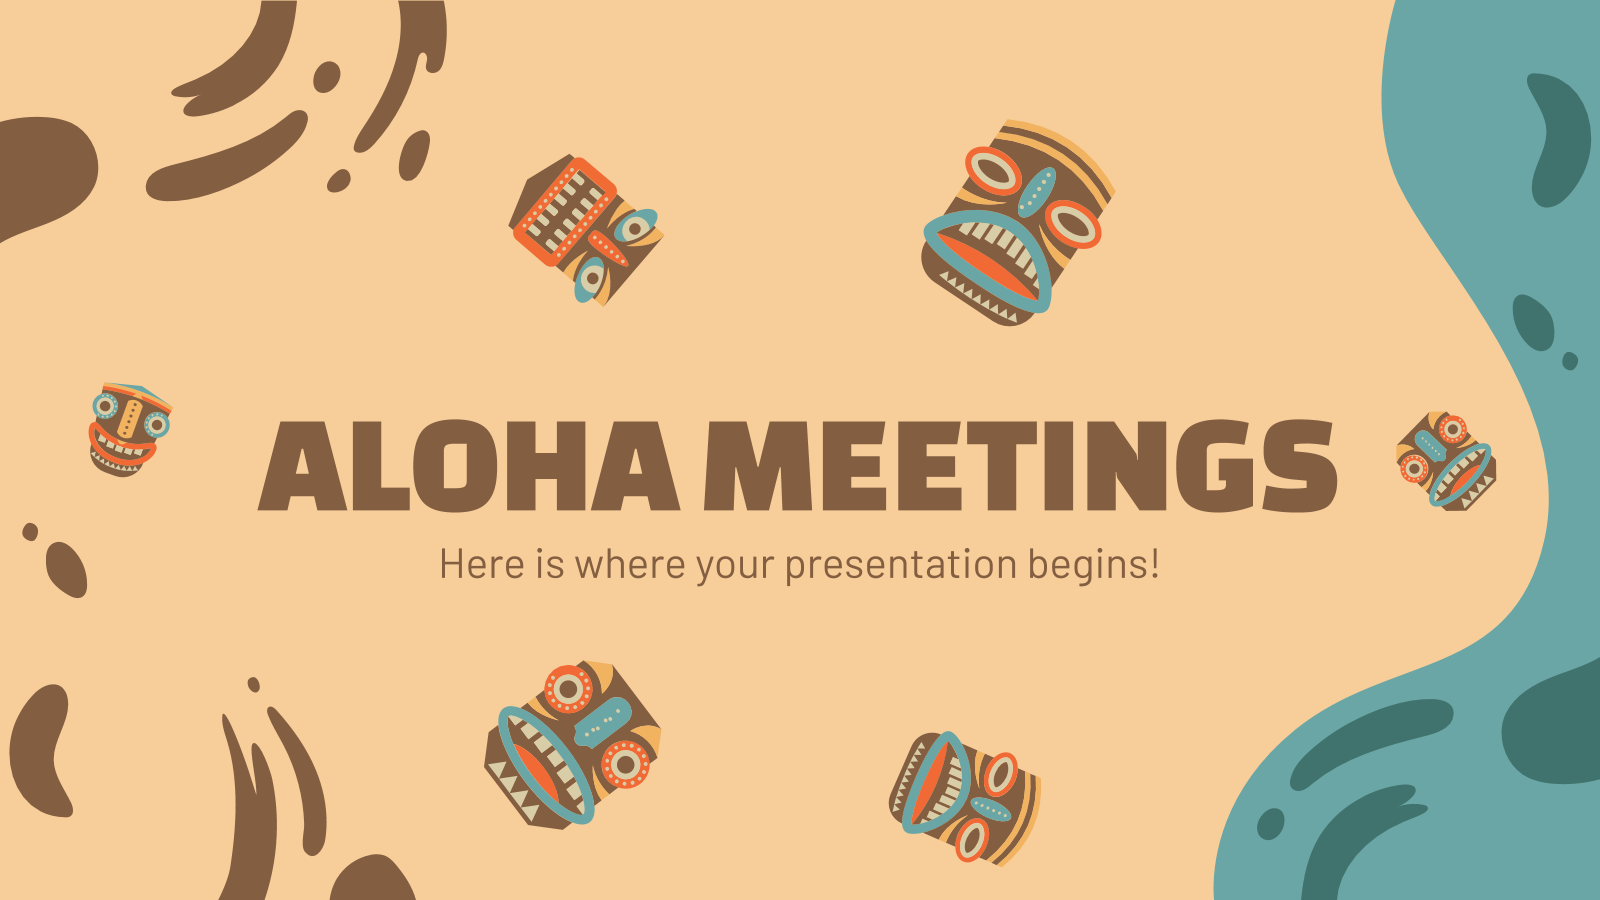 Aloha Morning Meetings presentation template